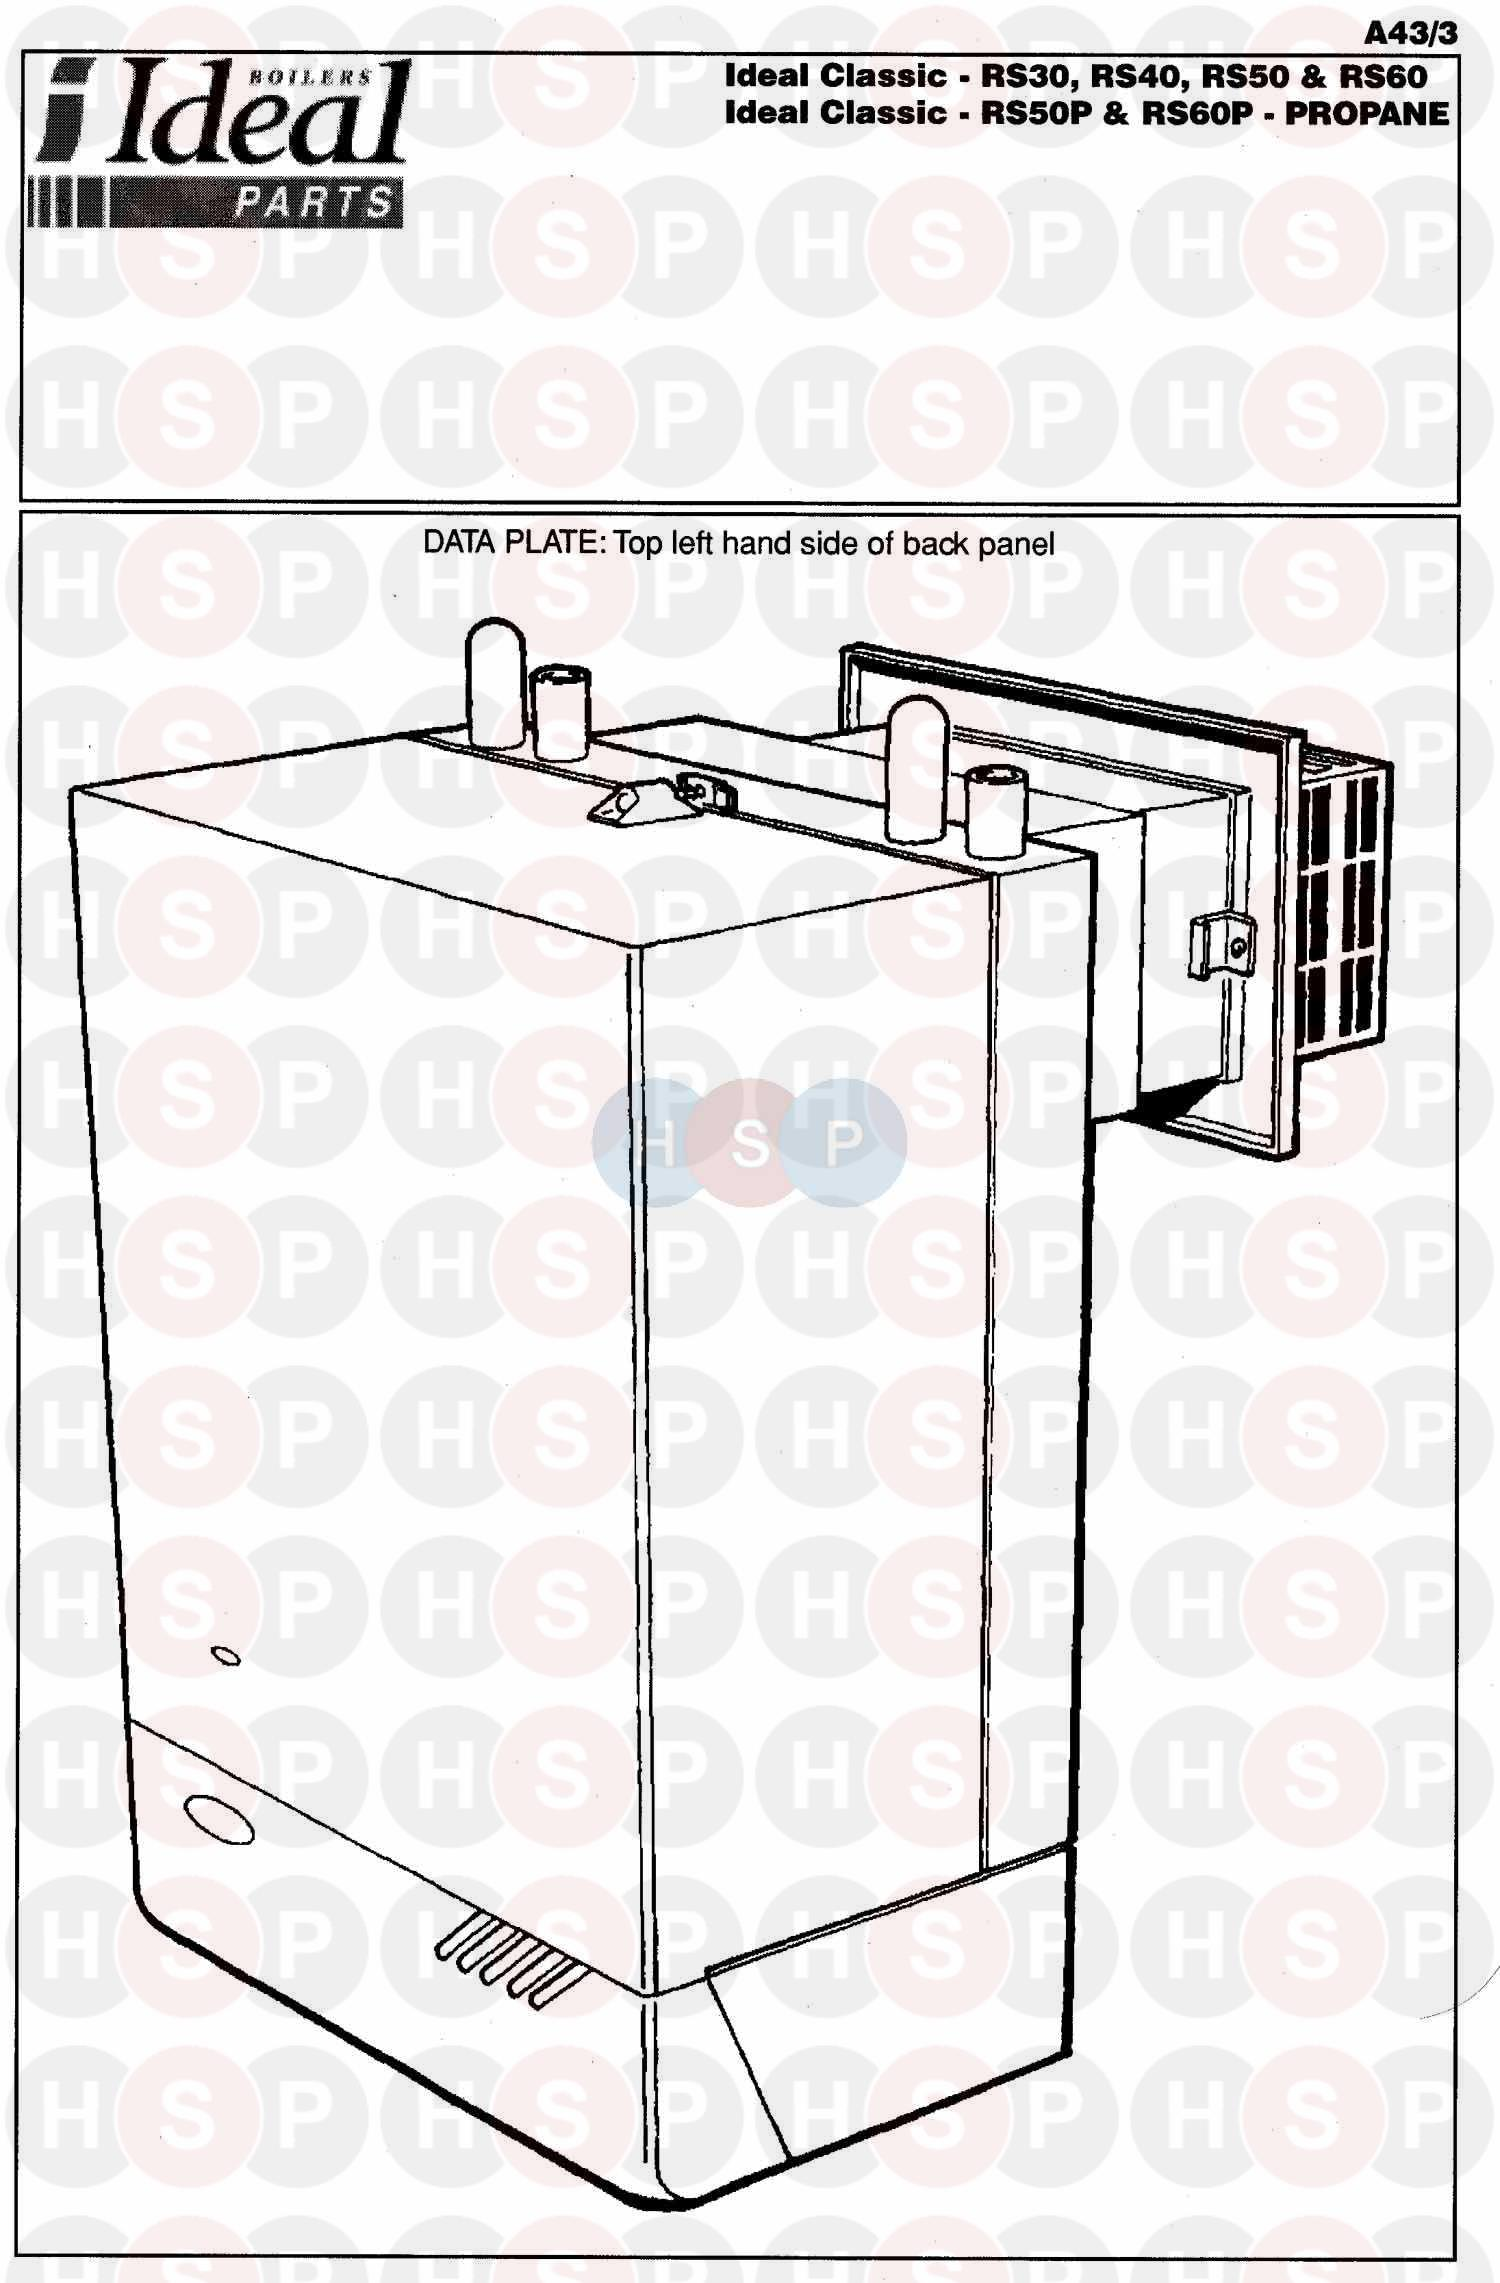 Rheem Furnace Diagram on ruud thermostat wiring diagram